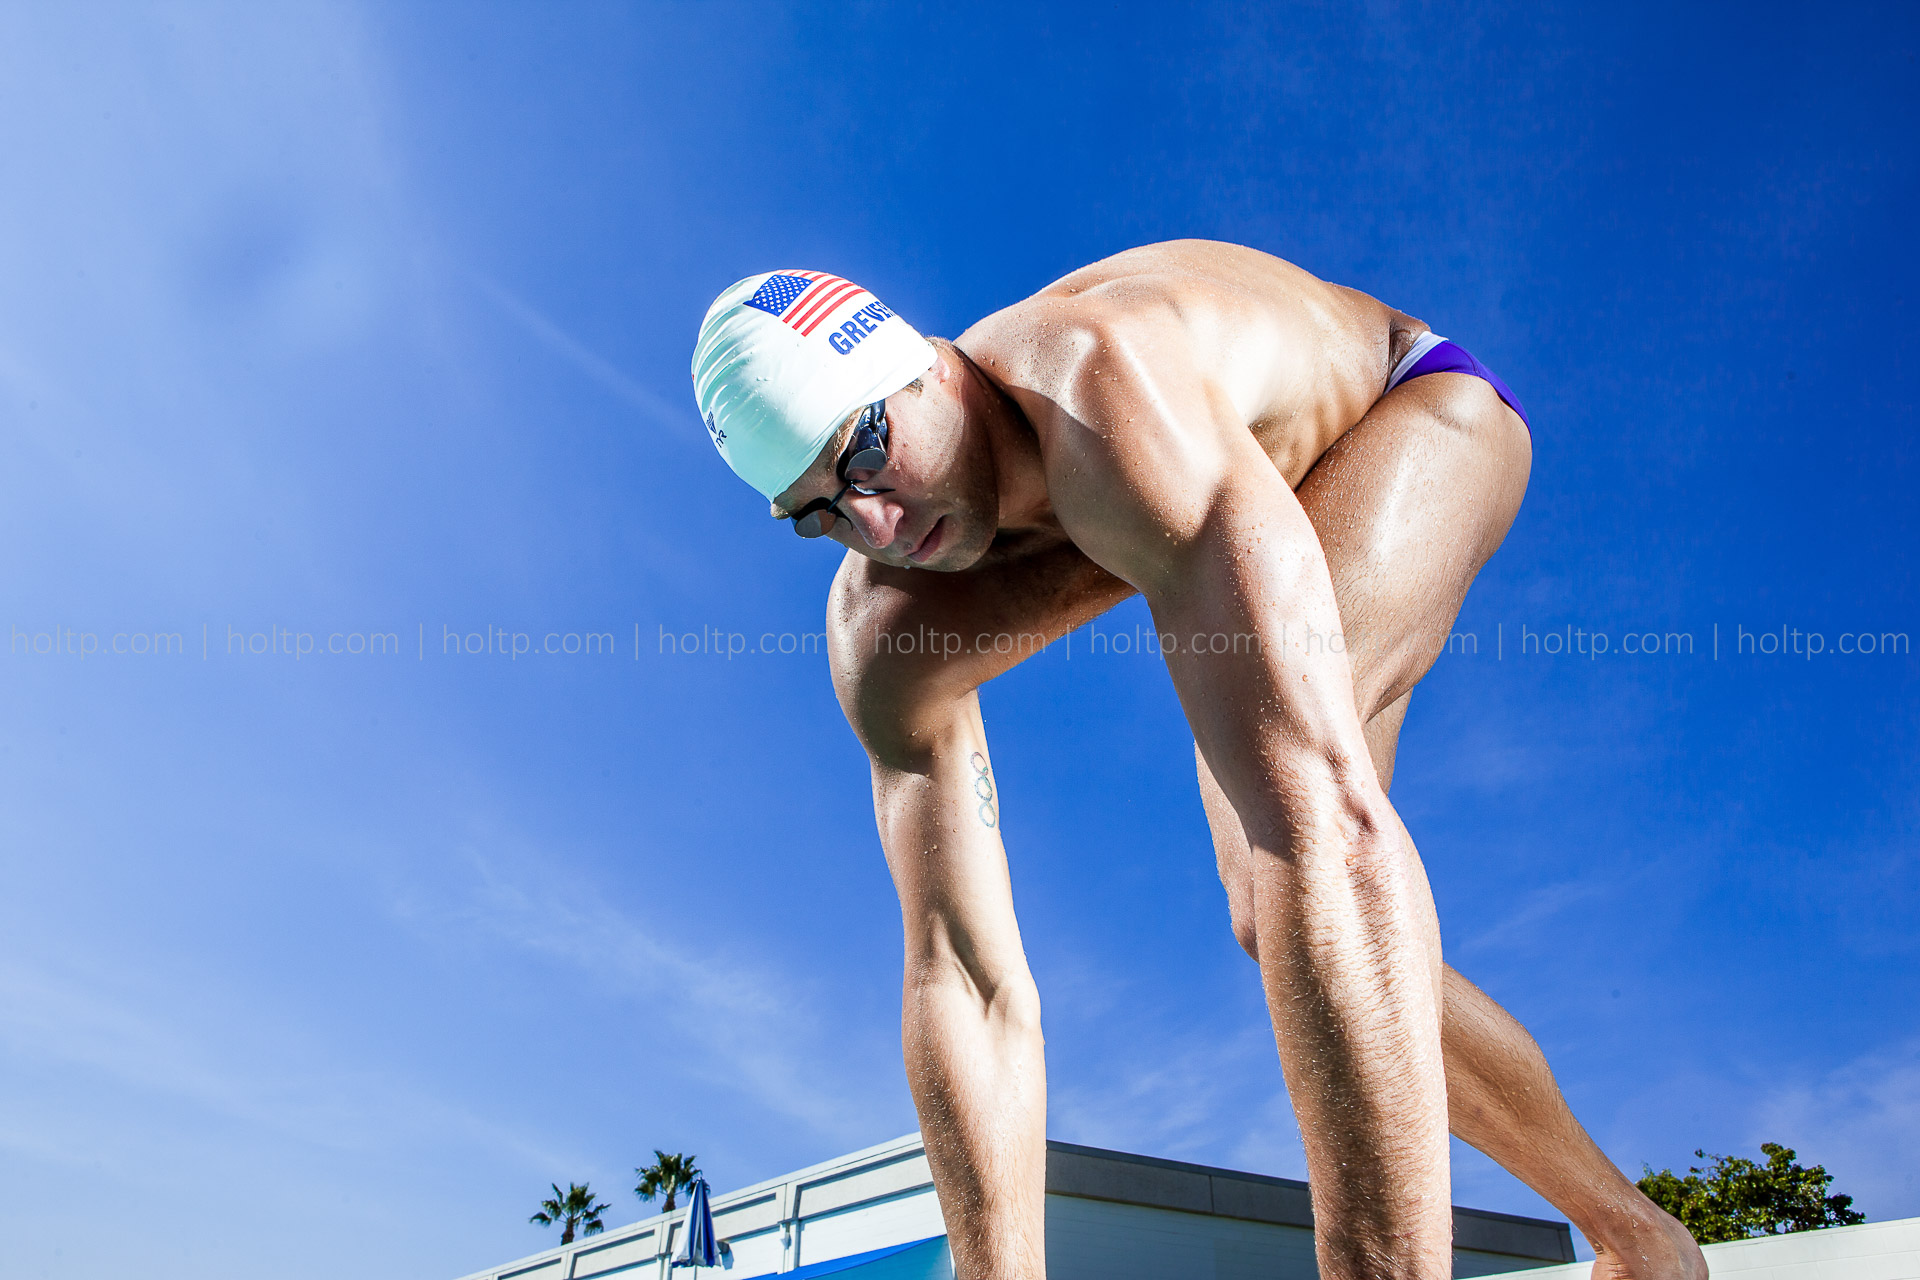 AT&T Photoshoot with Matt Grevers